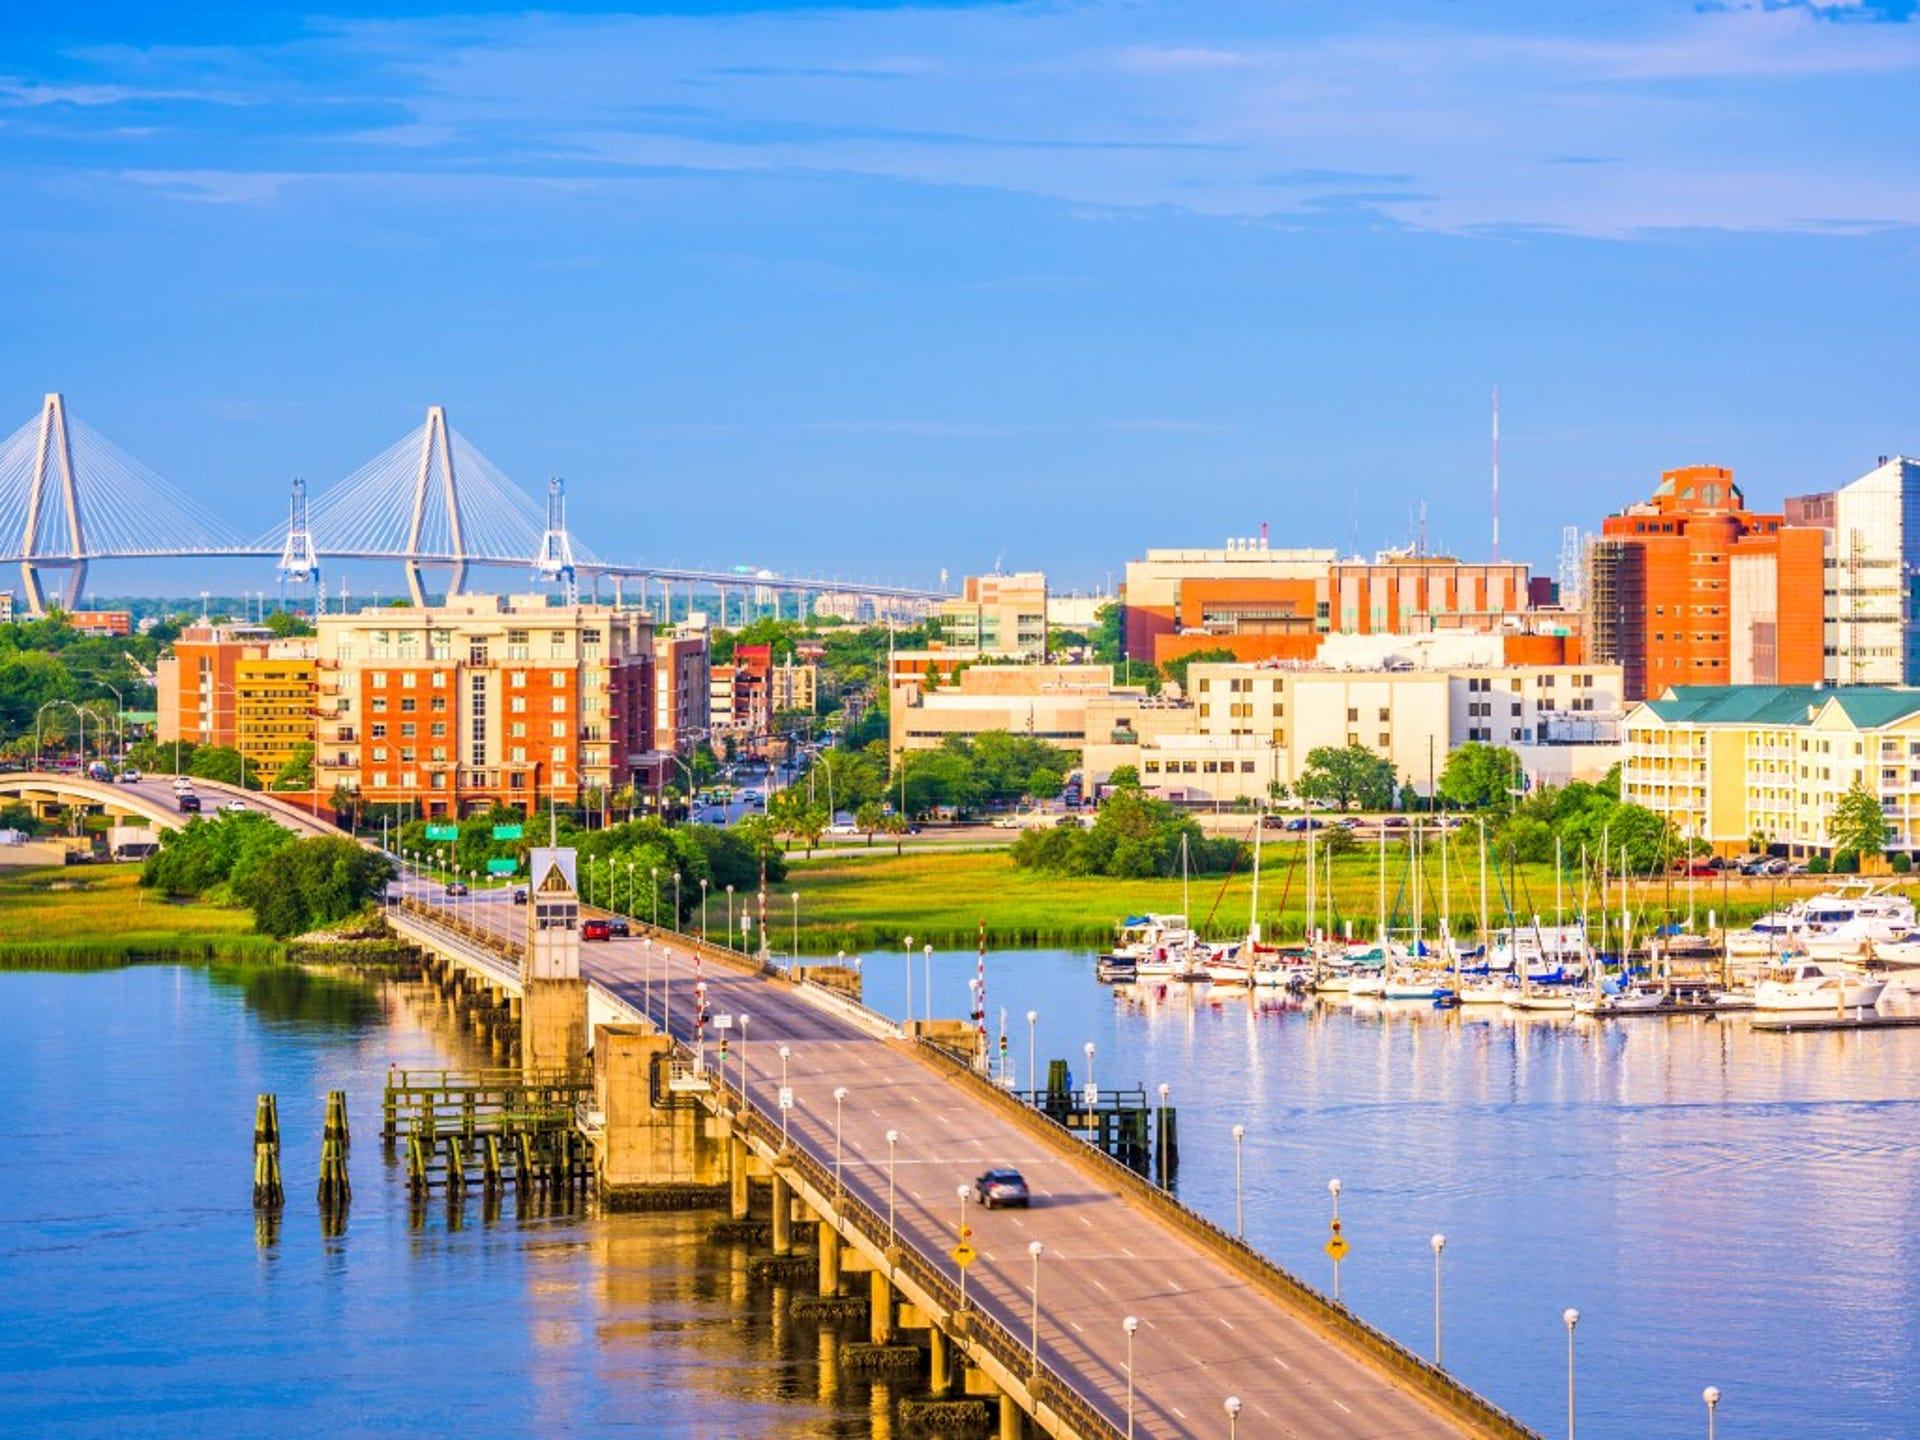 12. Charleston, SC     • Total properties at risk of hurricane damage:  155,740     • Reconstruction cost value of properties:  $40.9 billion     • Metro area population:  787,643     • Recent severe hurricane:  Hugo (1989) The Charleston-North Charleston metropolitan area is home to more than 787,000 people, one of the state's largest urban areas. Many long-term residents of the coastal city know first-hand just how damaging a serious hurricane can be. Hurricane Hugo -- the eye of which passed slightly north of Charleston Harbor in 1989 -- caused more than $7 billion in total damages and destroyed 26,000 homes across the Carolina Lowcountry.     ALSO READ: Cities With the Best Weather